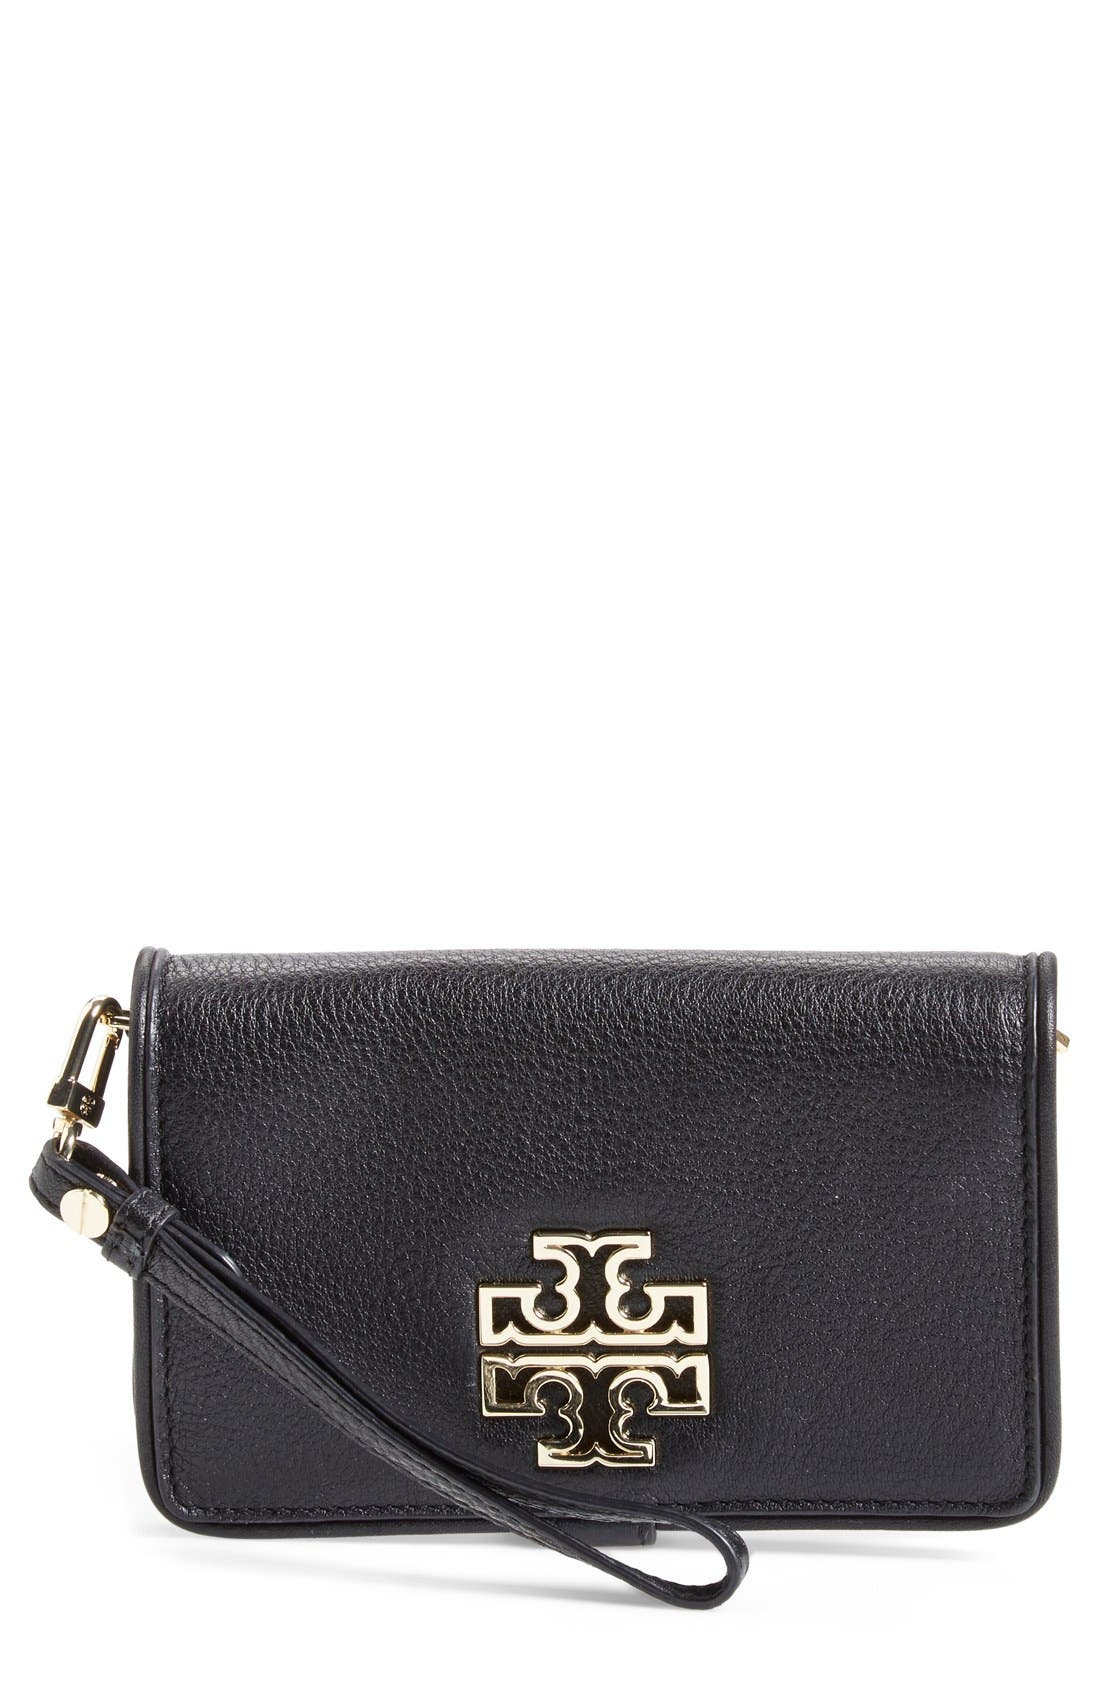 TORY BURCH 'Britten' Smartphone Wallet, Main, color, 001